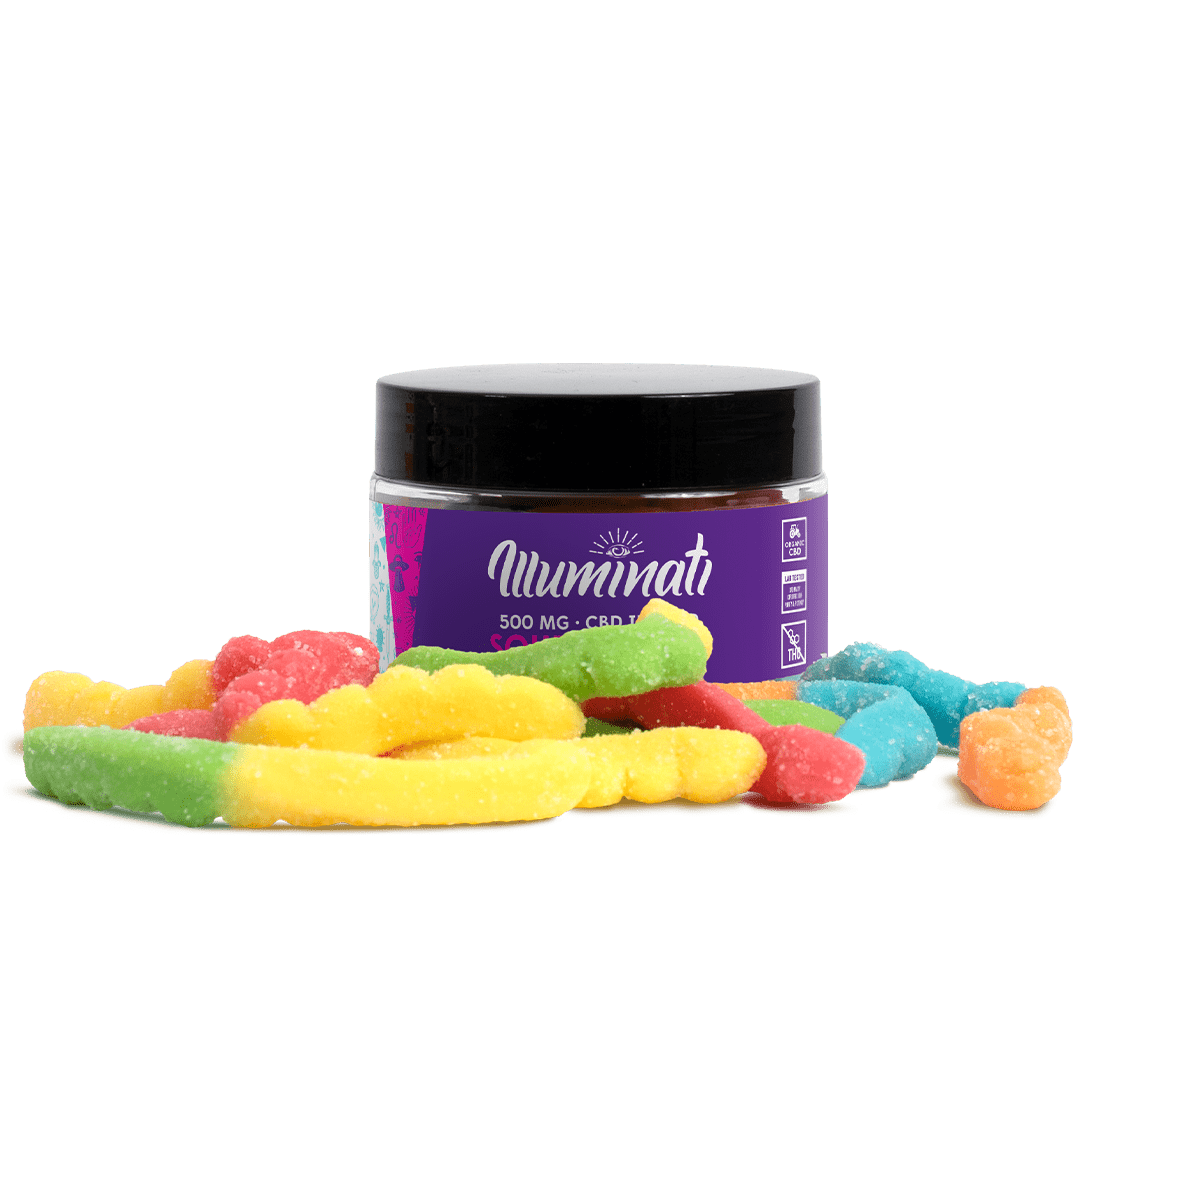 Illuminati CBD Sour Worms 500mg